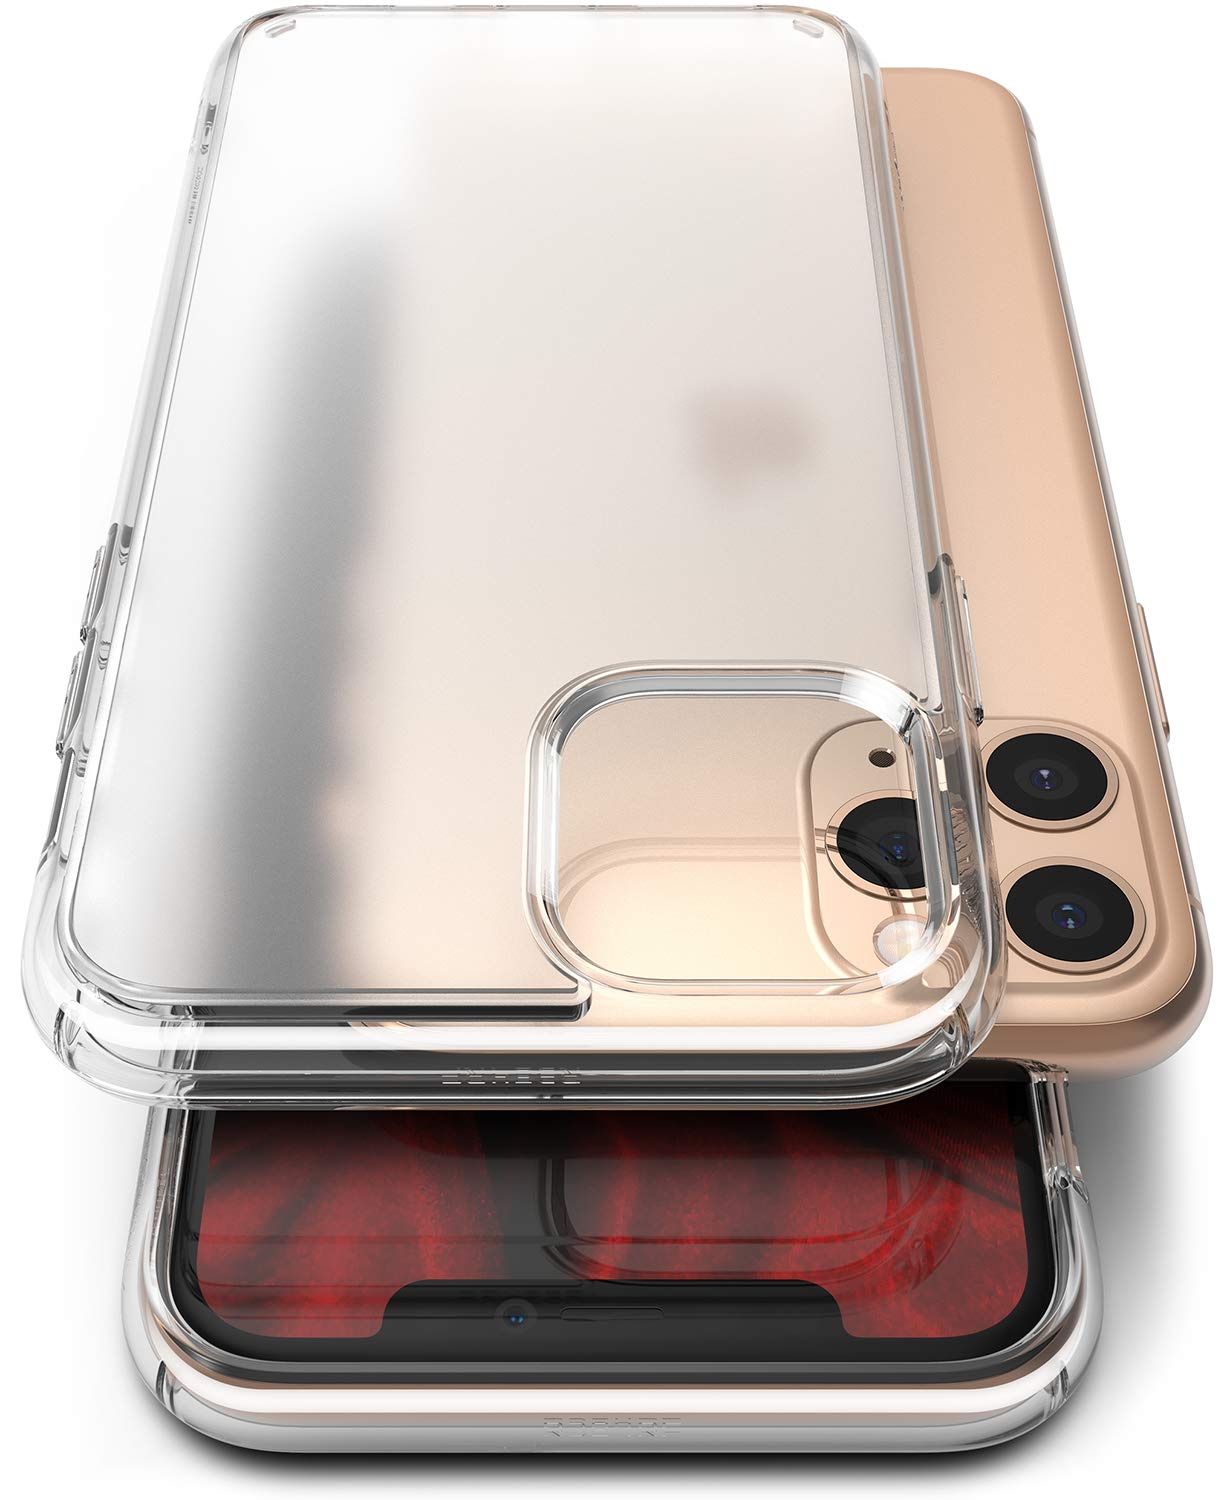 Ringke Fusion No-Smudge Matte Case Made for iPhone 11 Pro, Anti Fingerprint Frost PC Clear Case for iPhone 11 Pro (2019) - Translucent